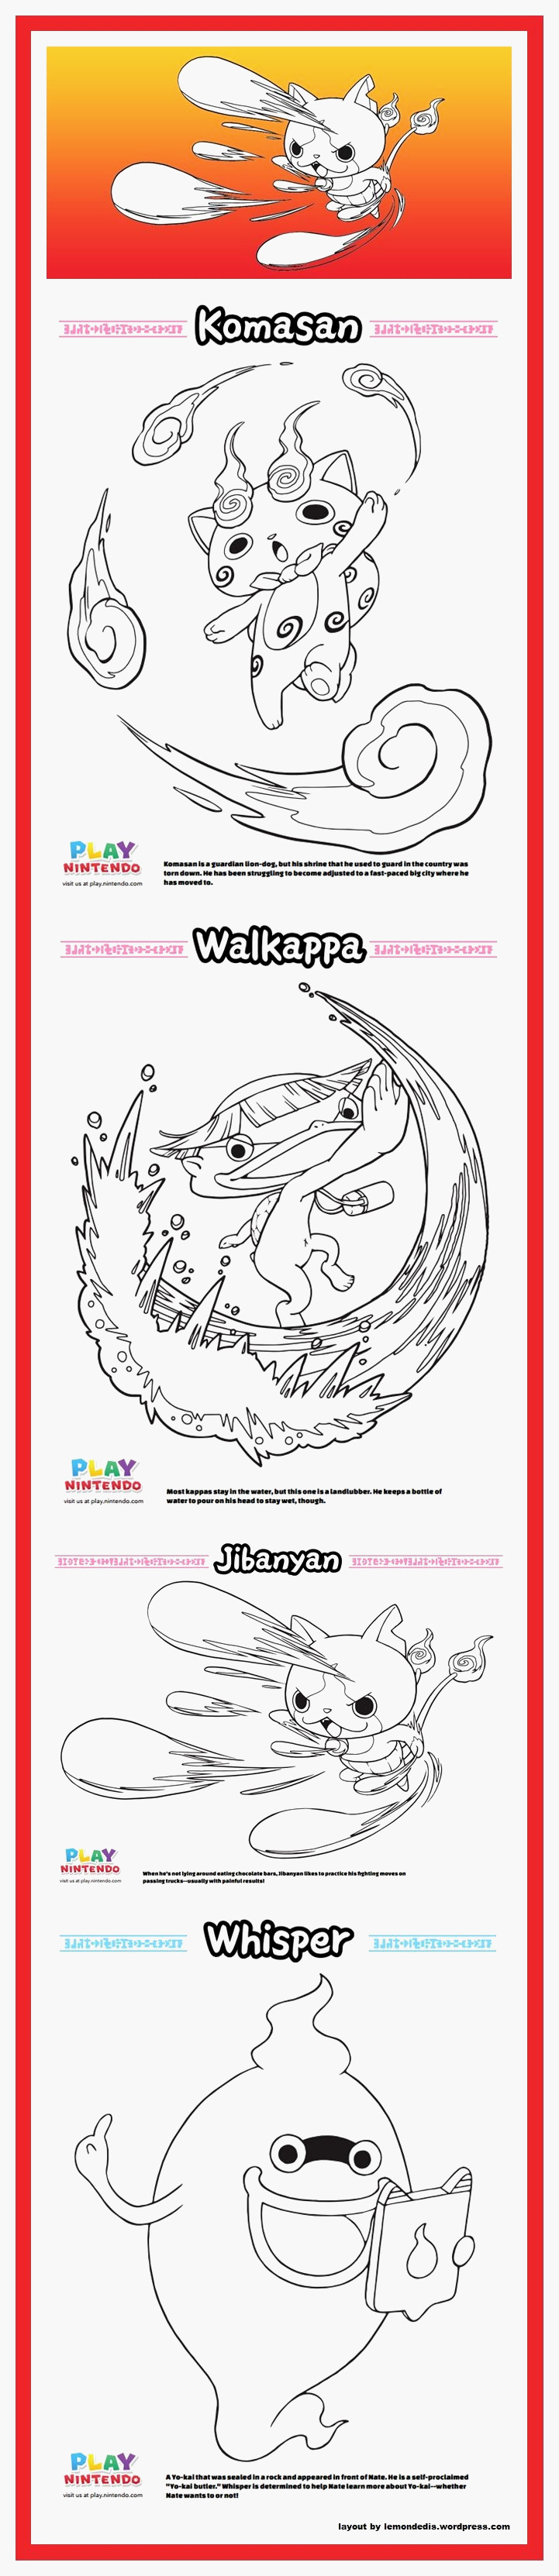 Big Nate Coloring Pages  Download 13k - Free Download